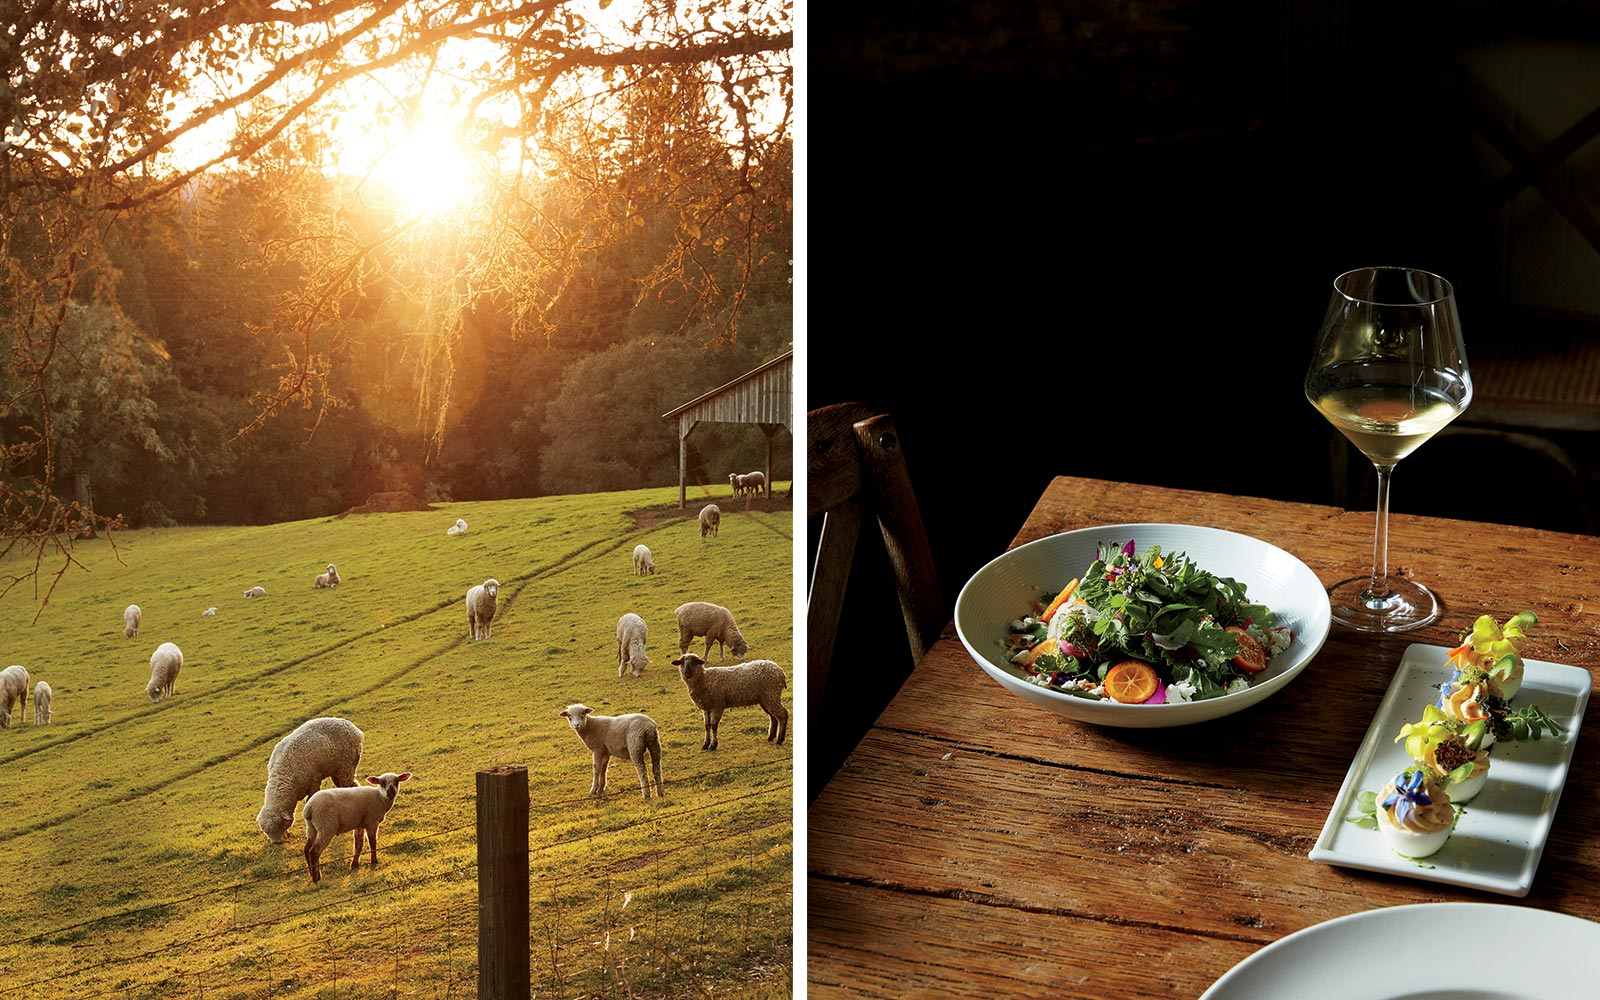 Scenics and Dining in Anderson Valley and Philo, California